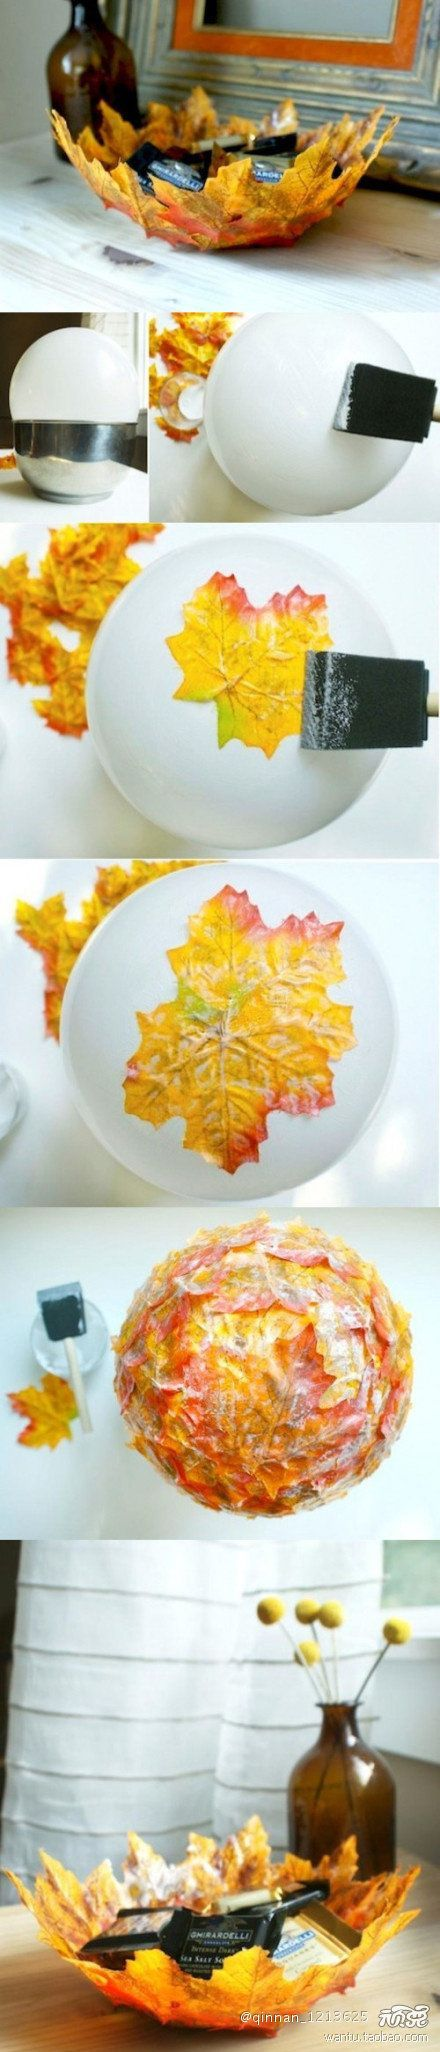 Still needing a candy bowl for your Thanksgiving celebration? Why not make it from the fall leaves in your back yard?